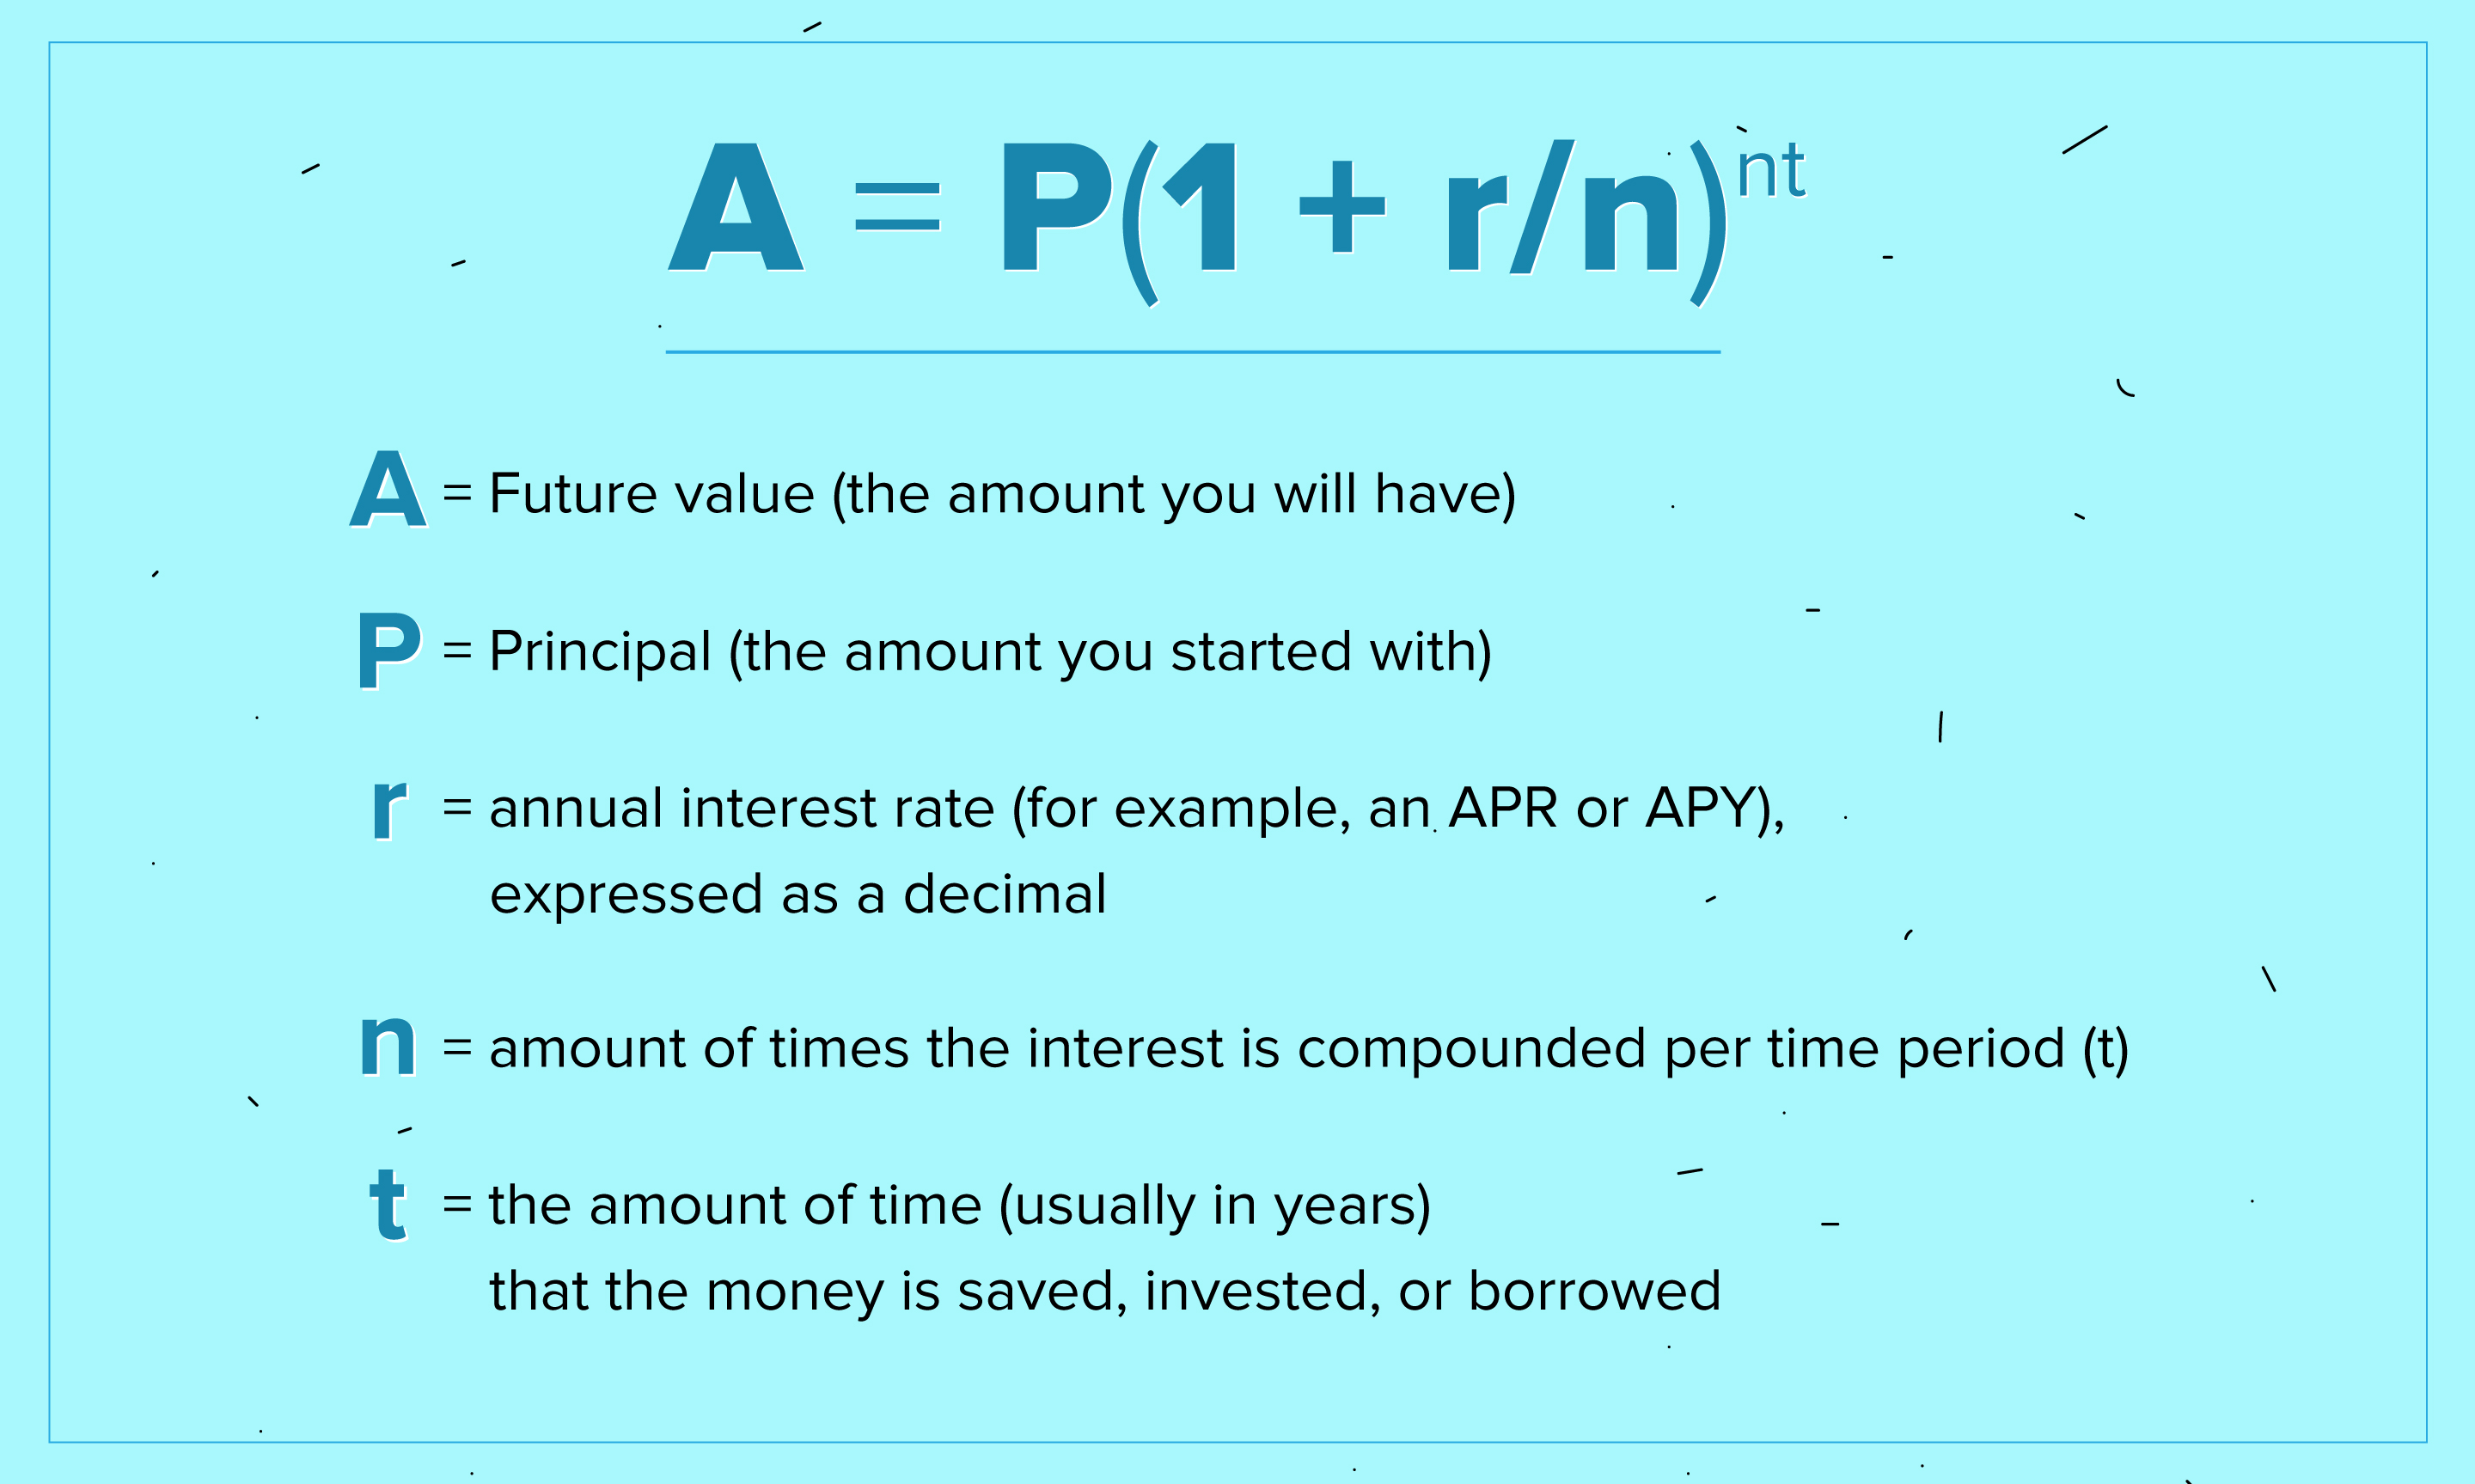 The compound interest formula is A = P(1+r/n) to the power of nt